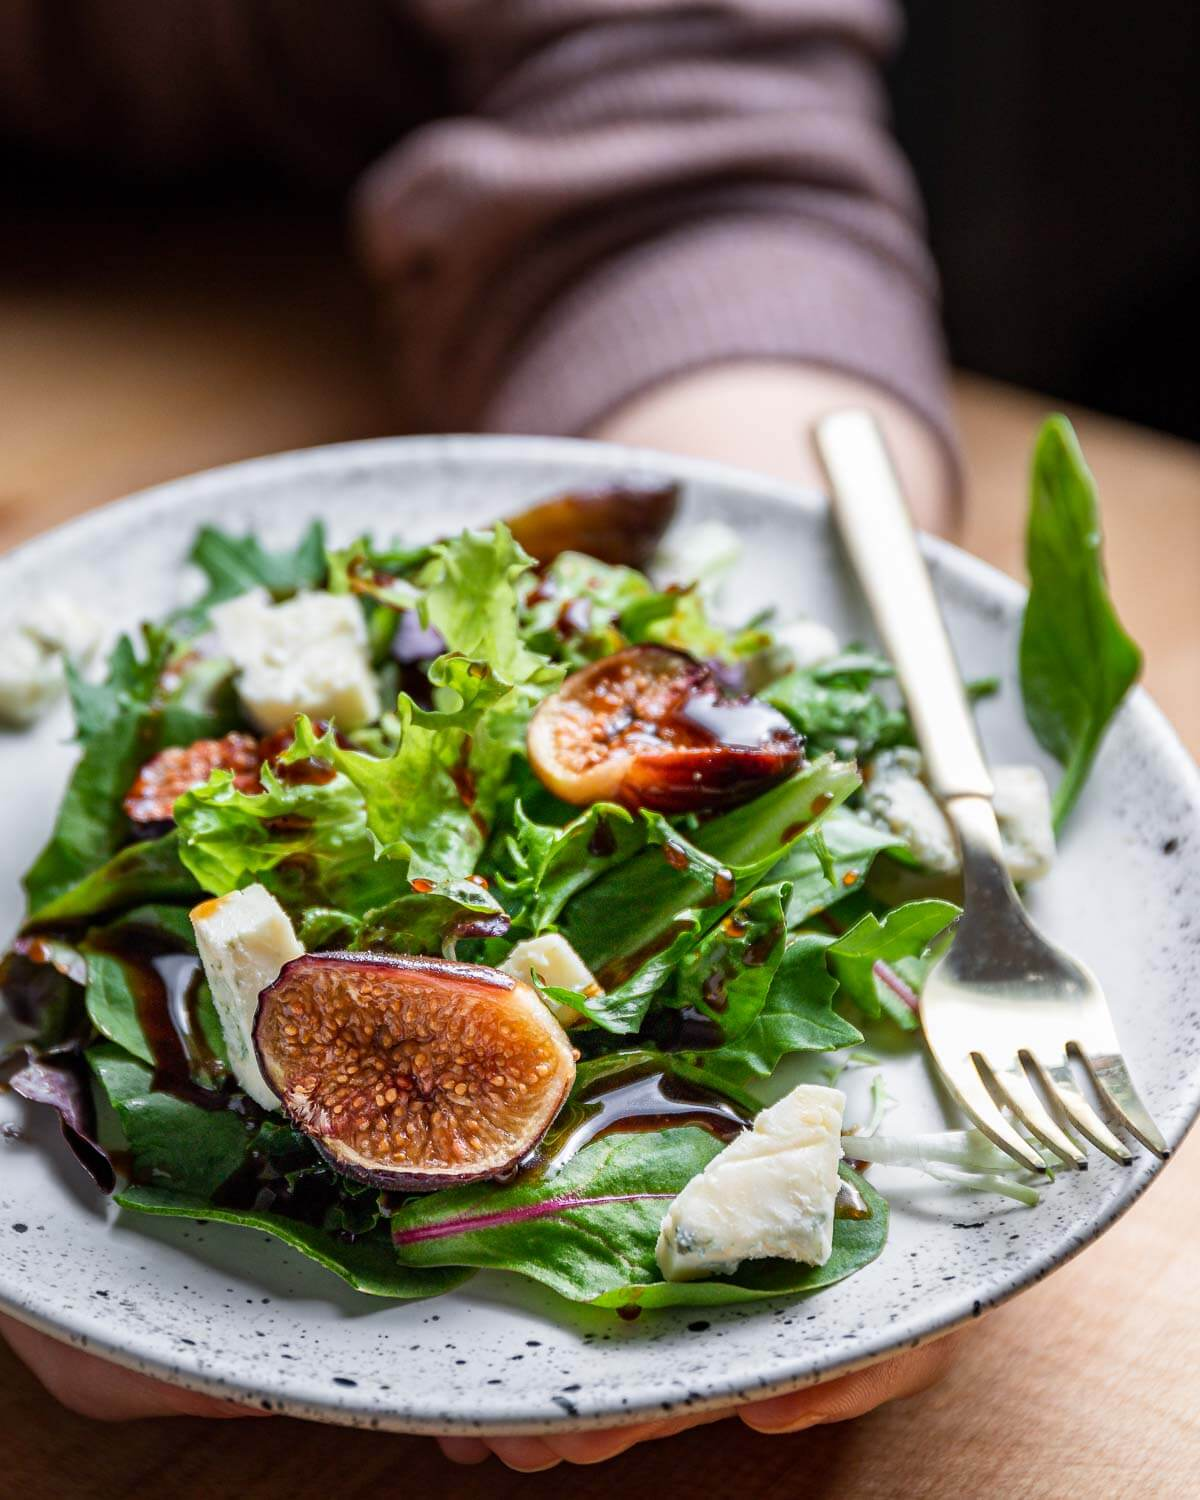 White plate with salad greens, gorgonzola cheese, and figs being held in hands.